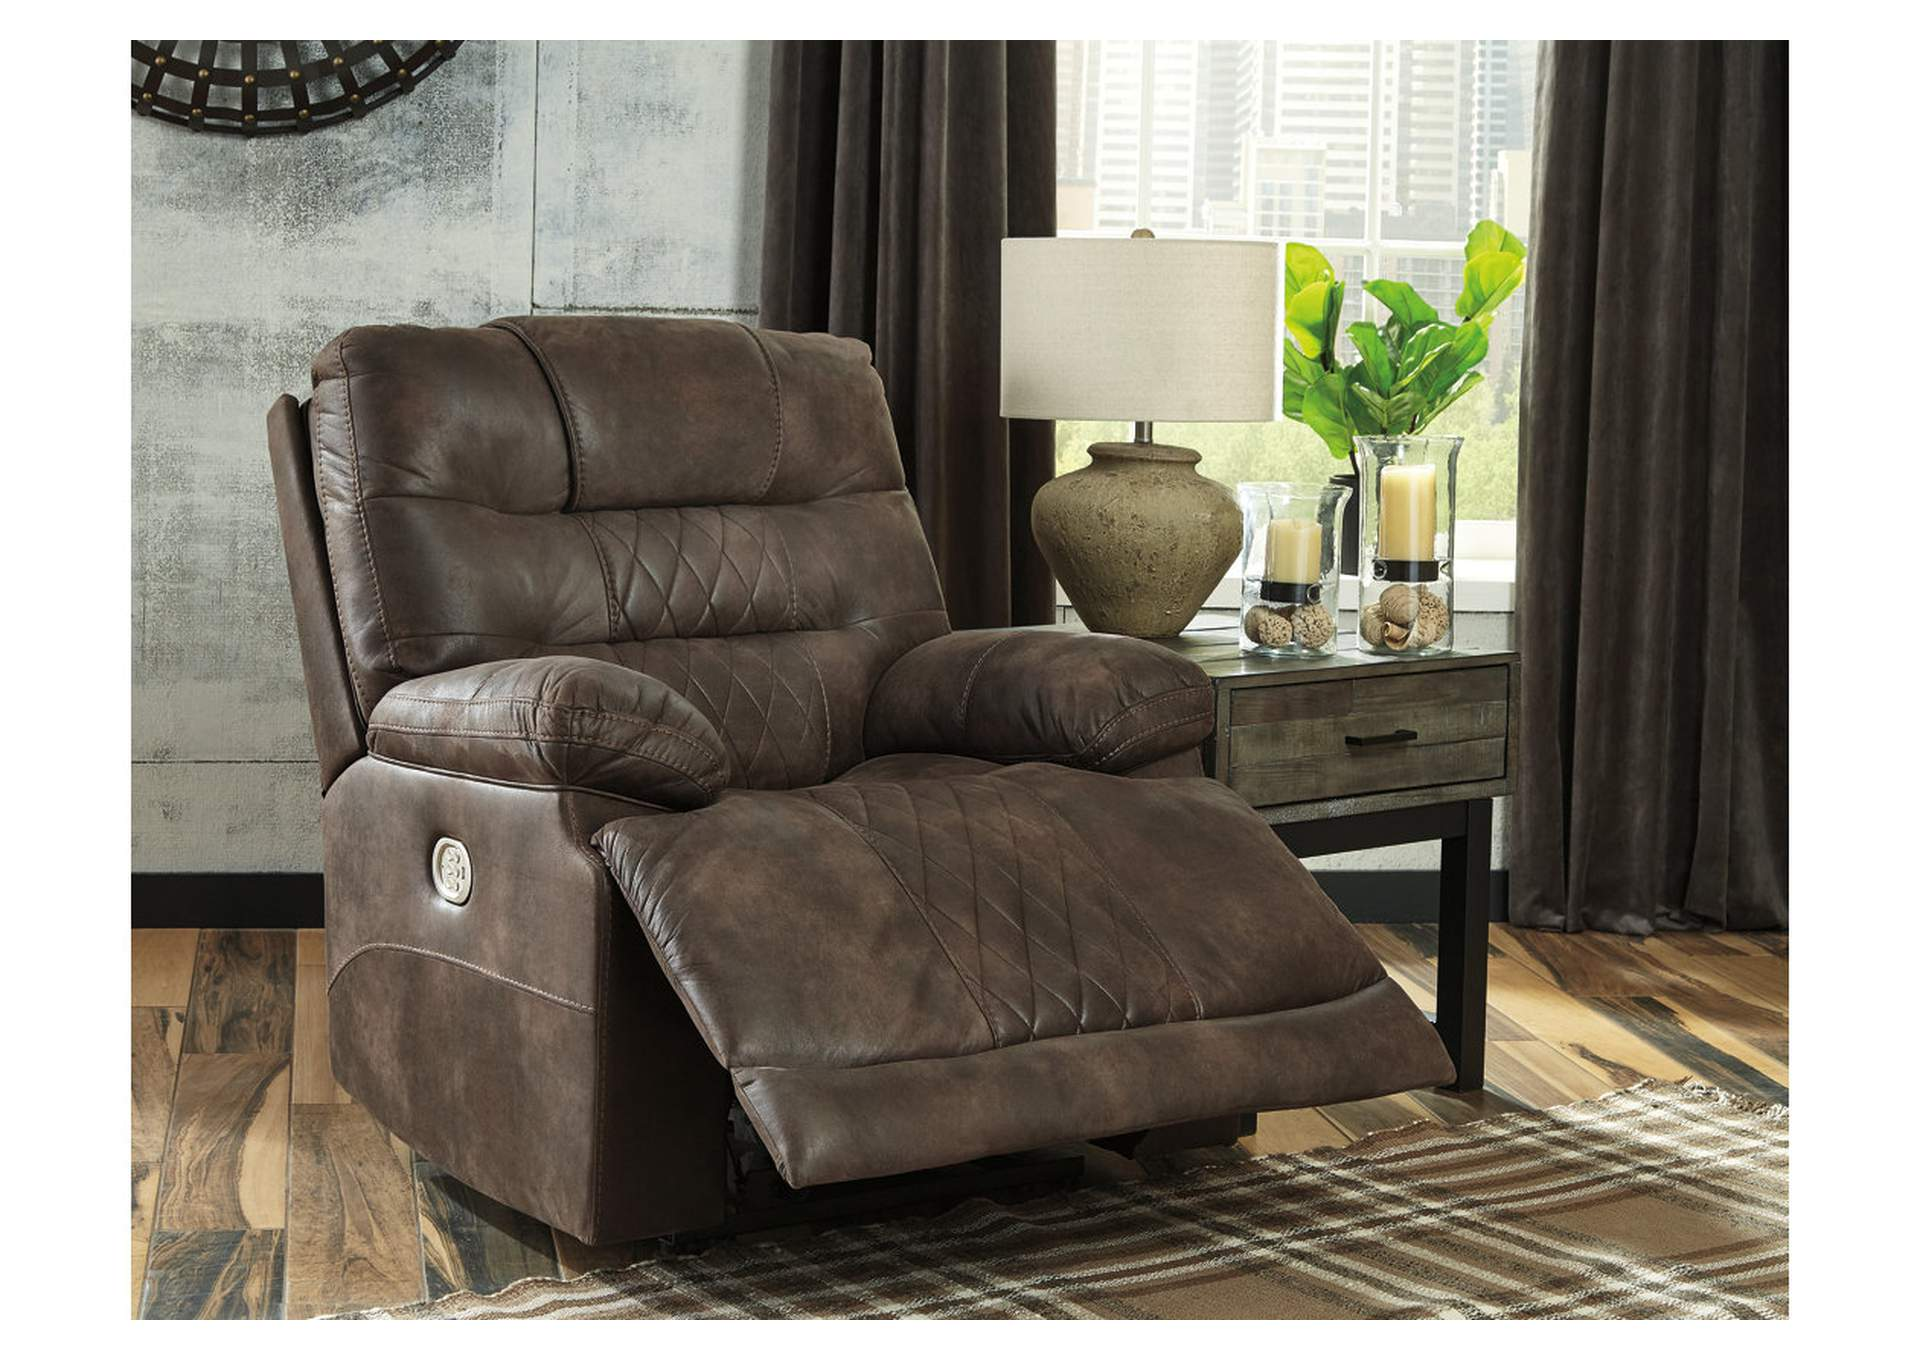 Welsford Walnut Power Recliner w/Adjustable Headrest,Signature Design By Ashley